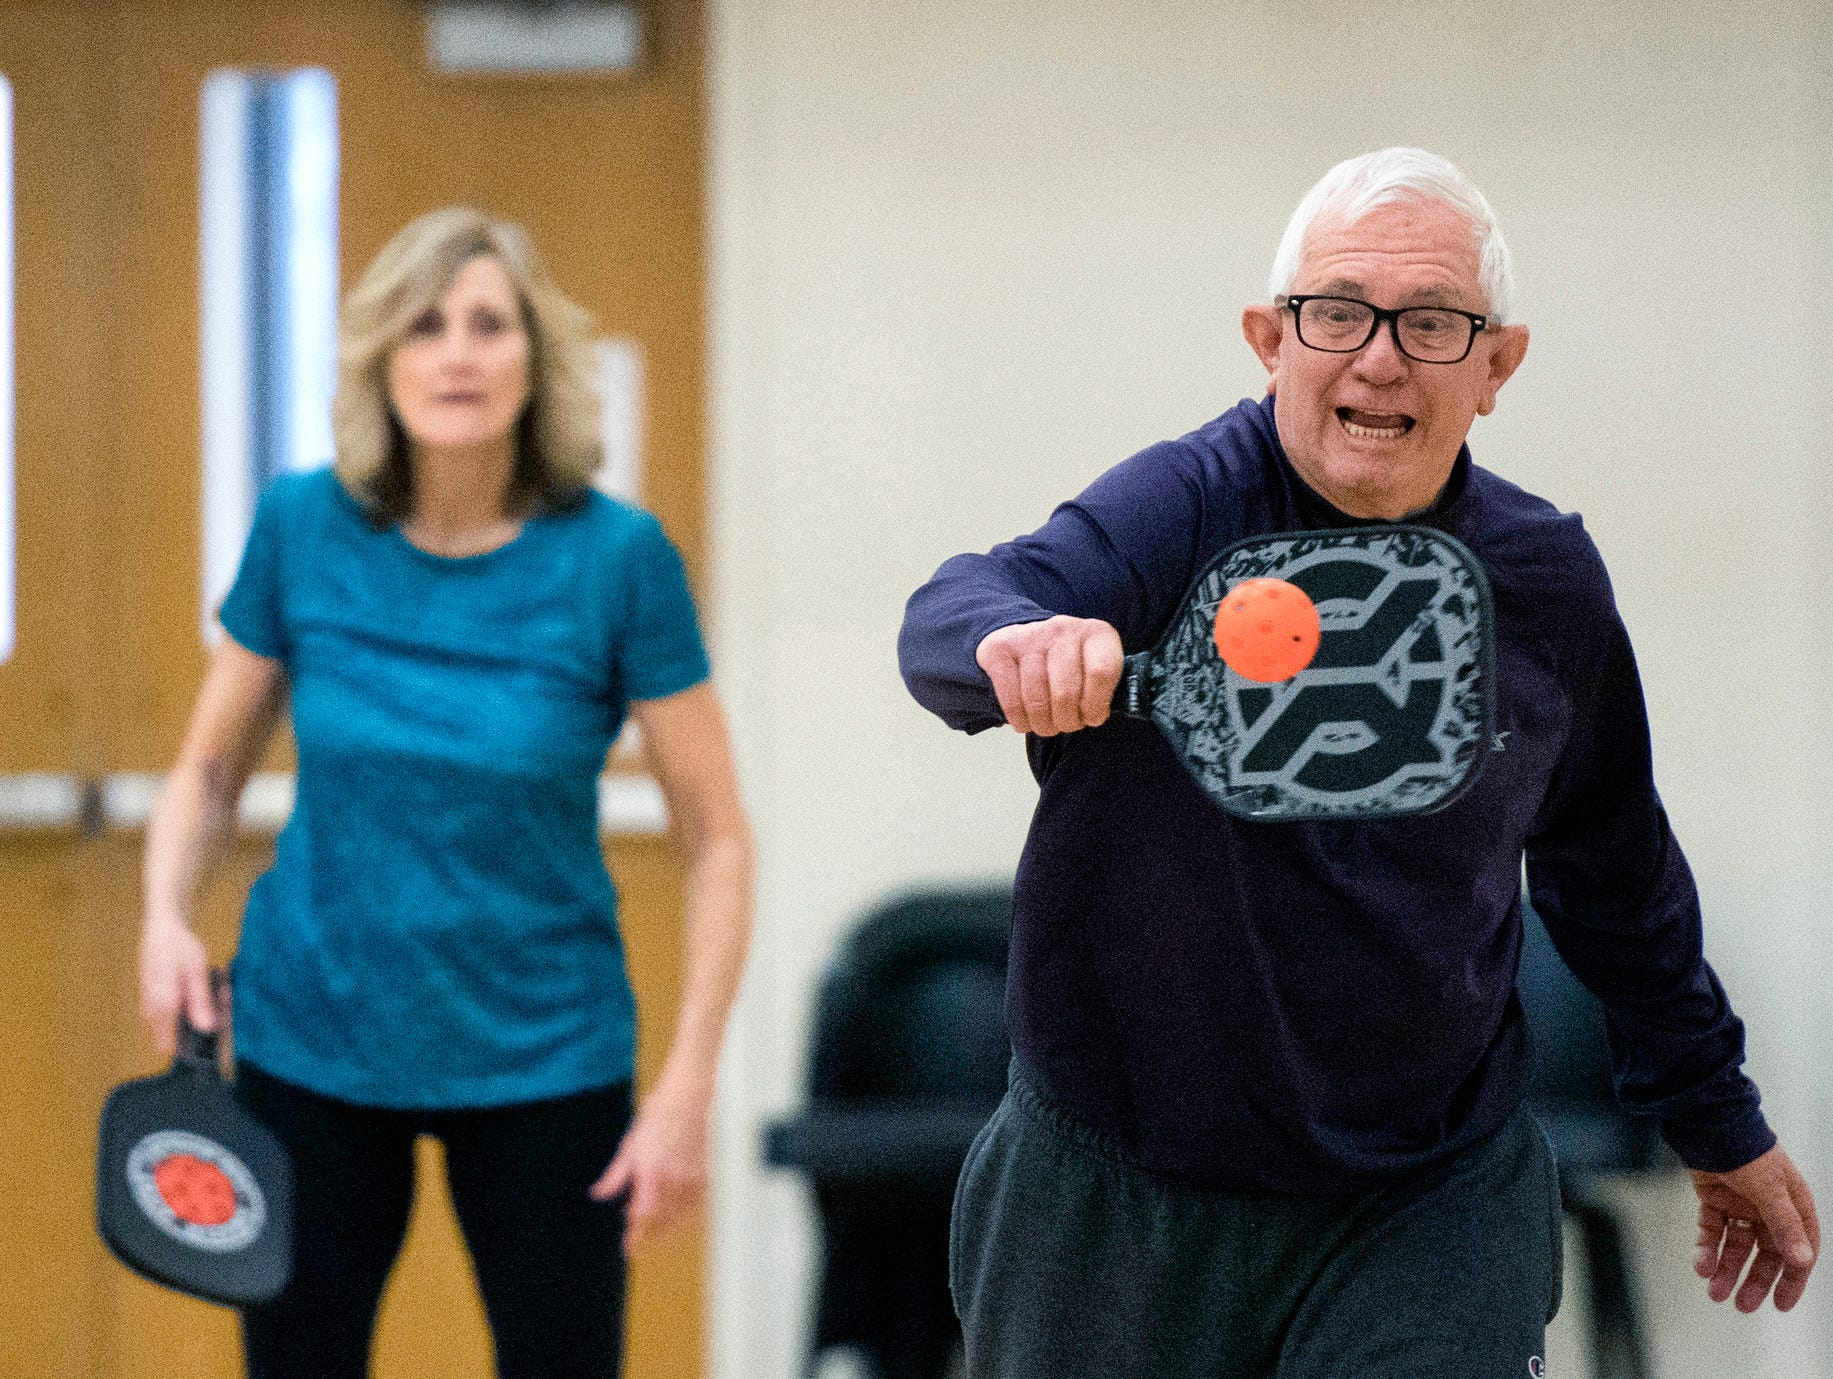 James Brown, front, returns the ball while playing a game of game of pickle ball with partner Jean Schmitt, back, at St. Peter's Methodist Church, Wednesday, March 20, 2019.